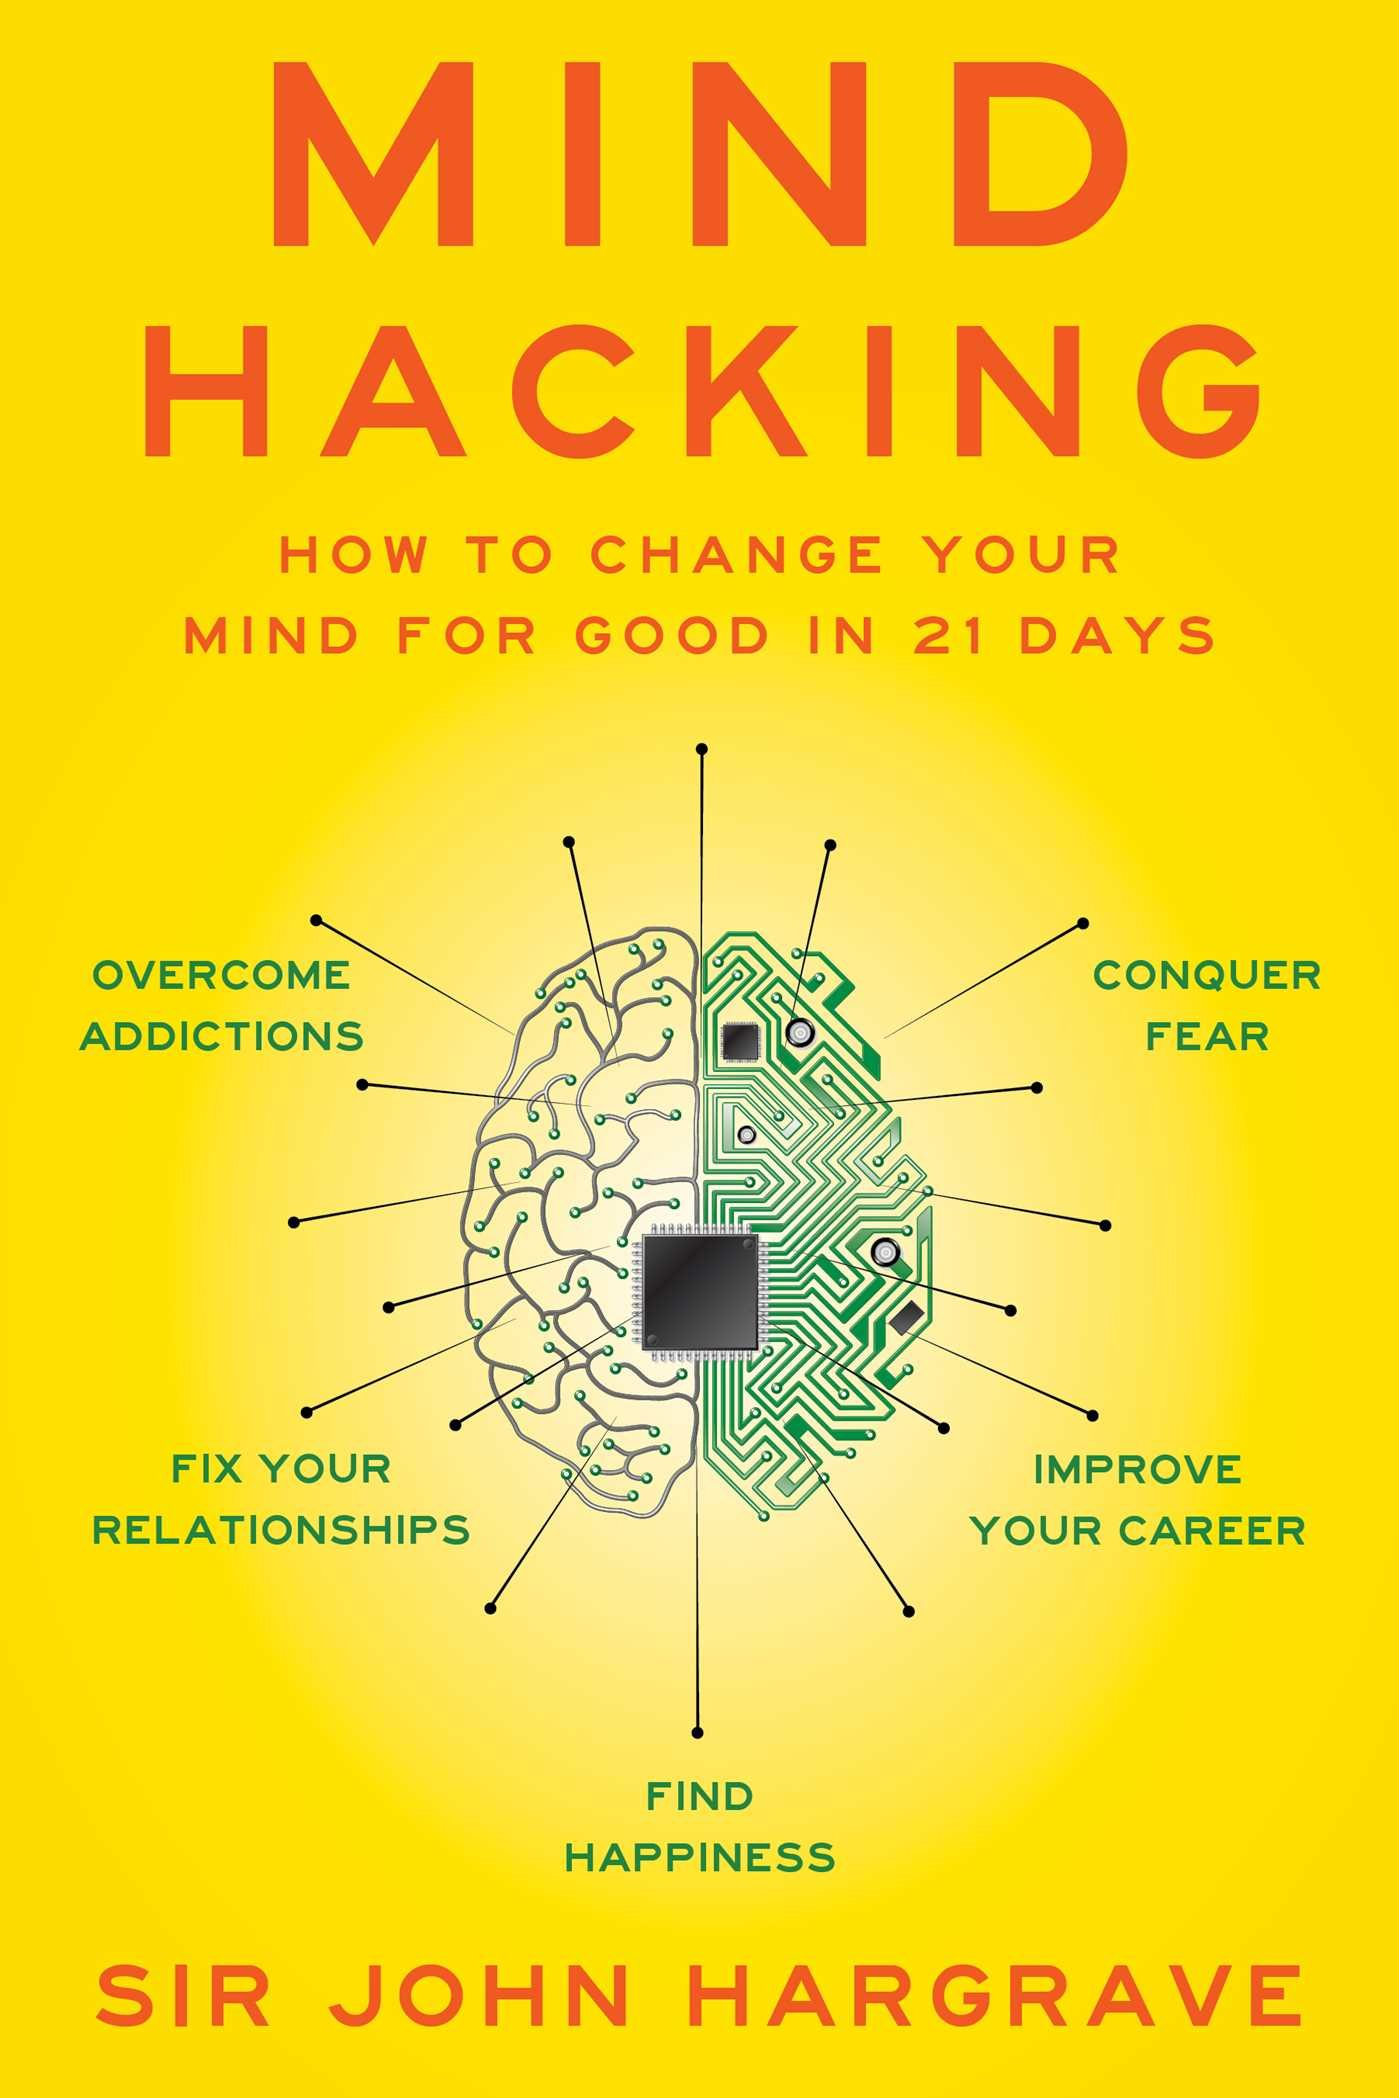 Mind hacking how to change your mind for good in 21 days sir john mind hacking how to change your mind for good in 21 days sir john hargrave 9781501105661 amazon books fandeluxe Image collections